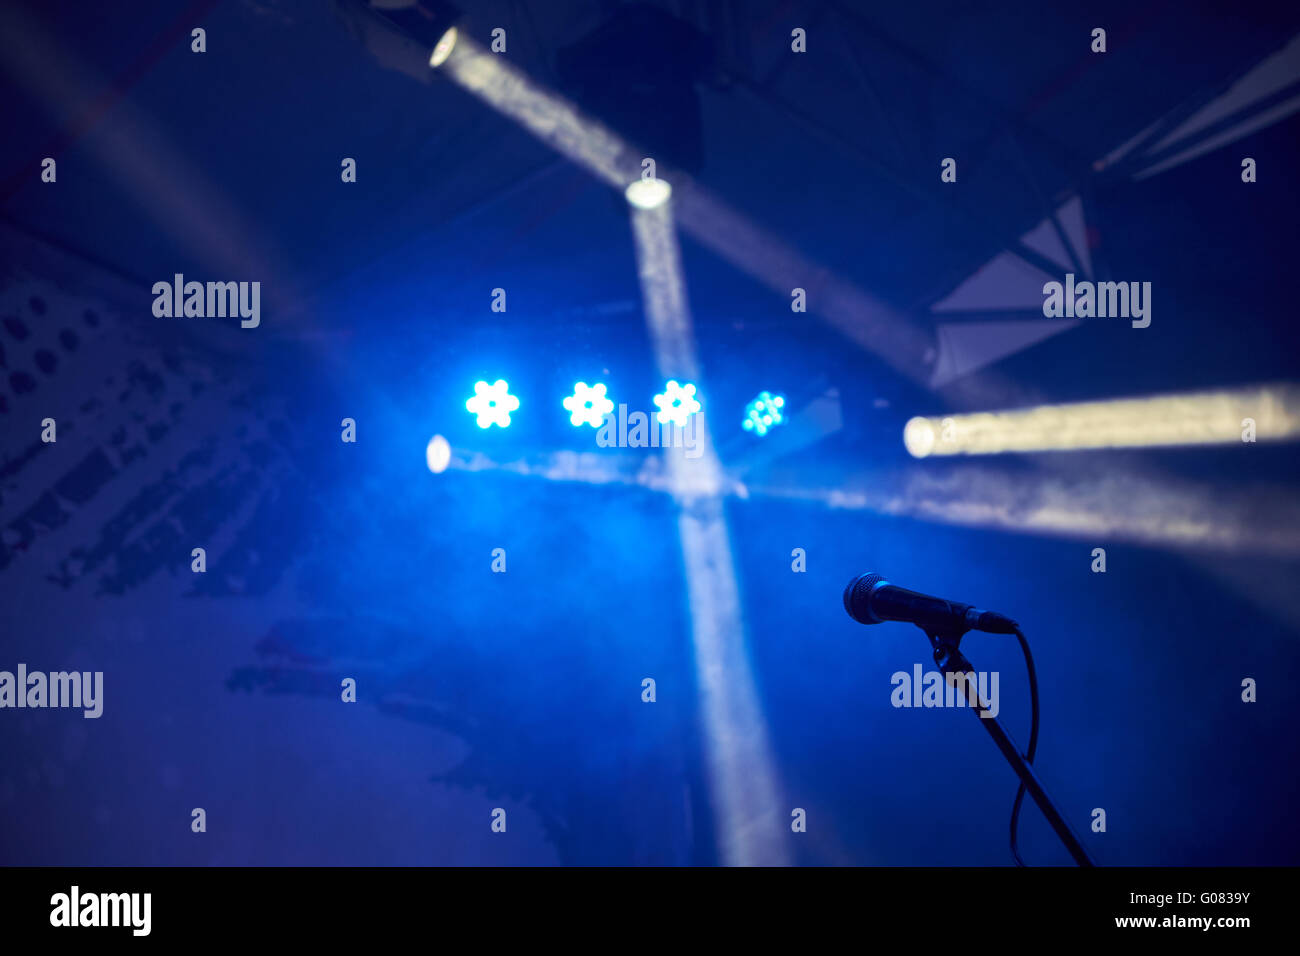 Microphone On Stage With Blue Lights And Fog